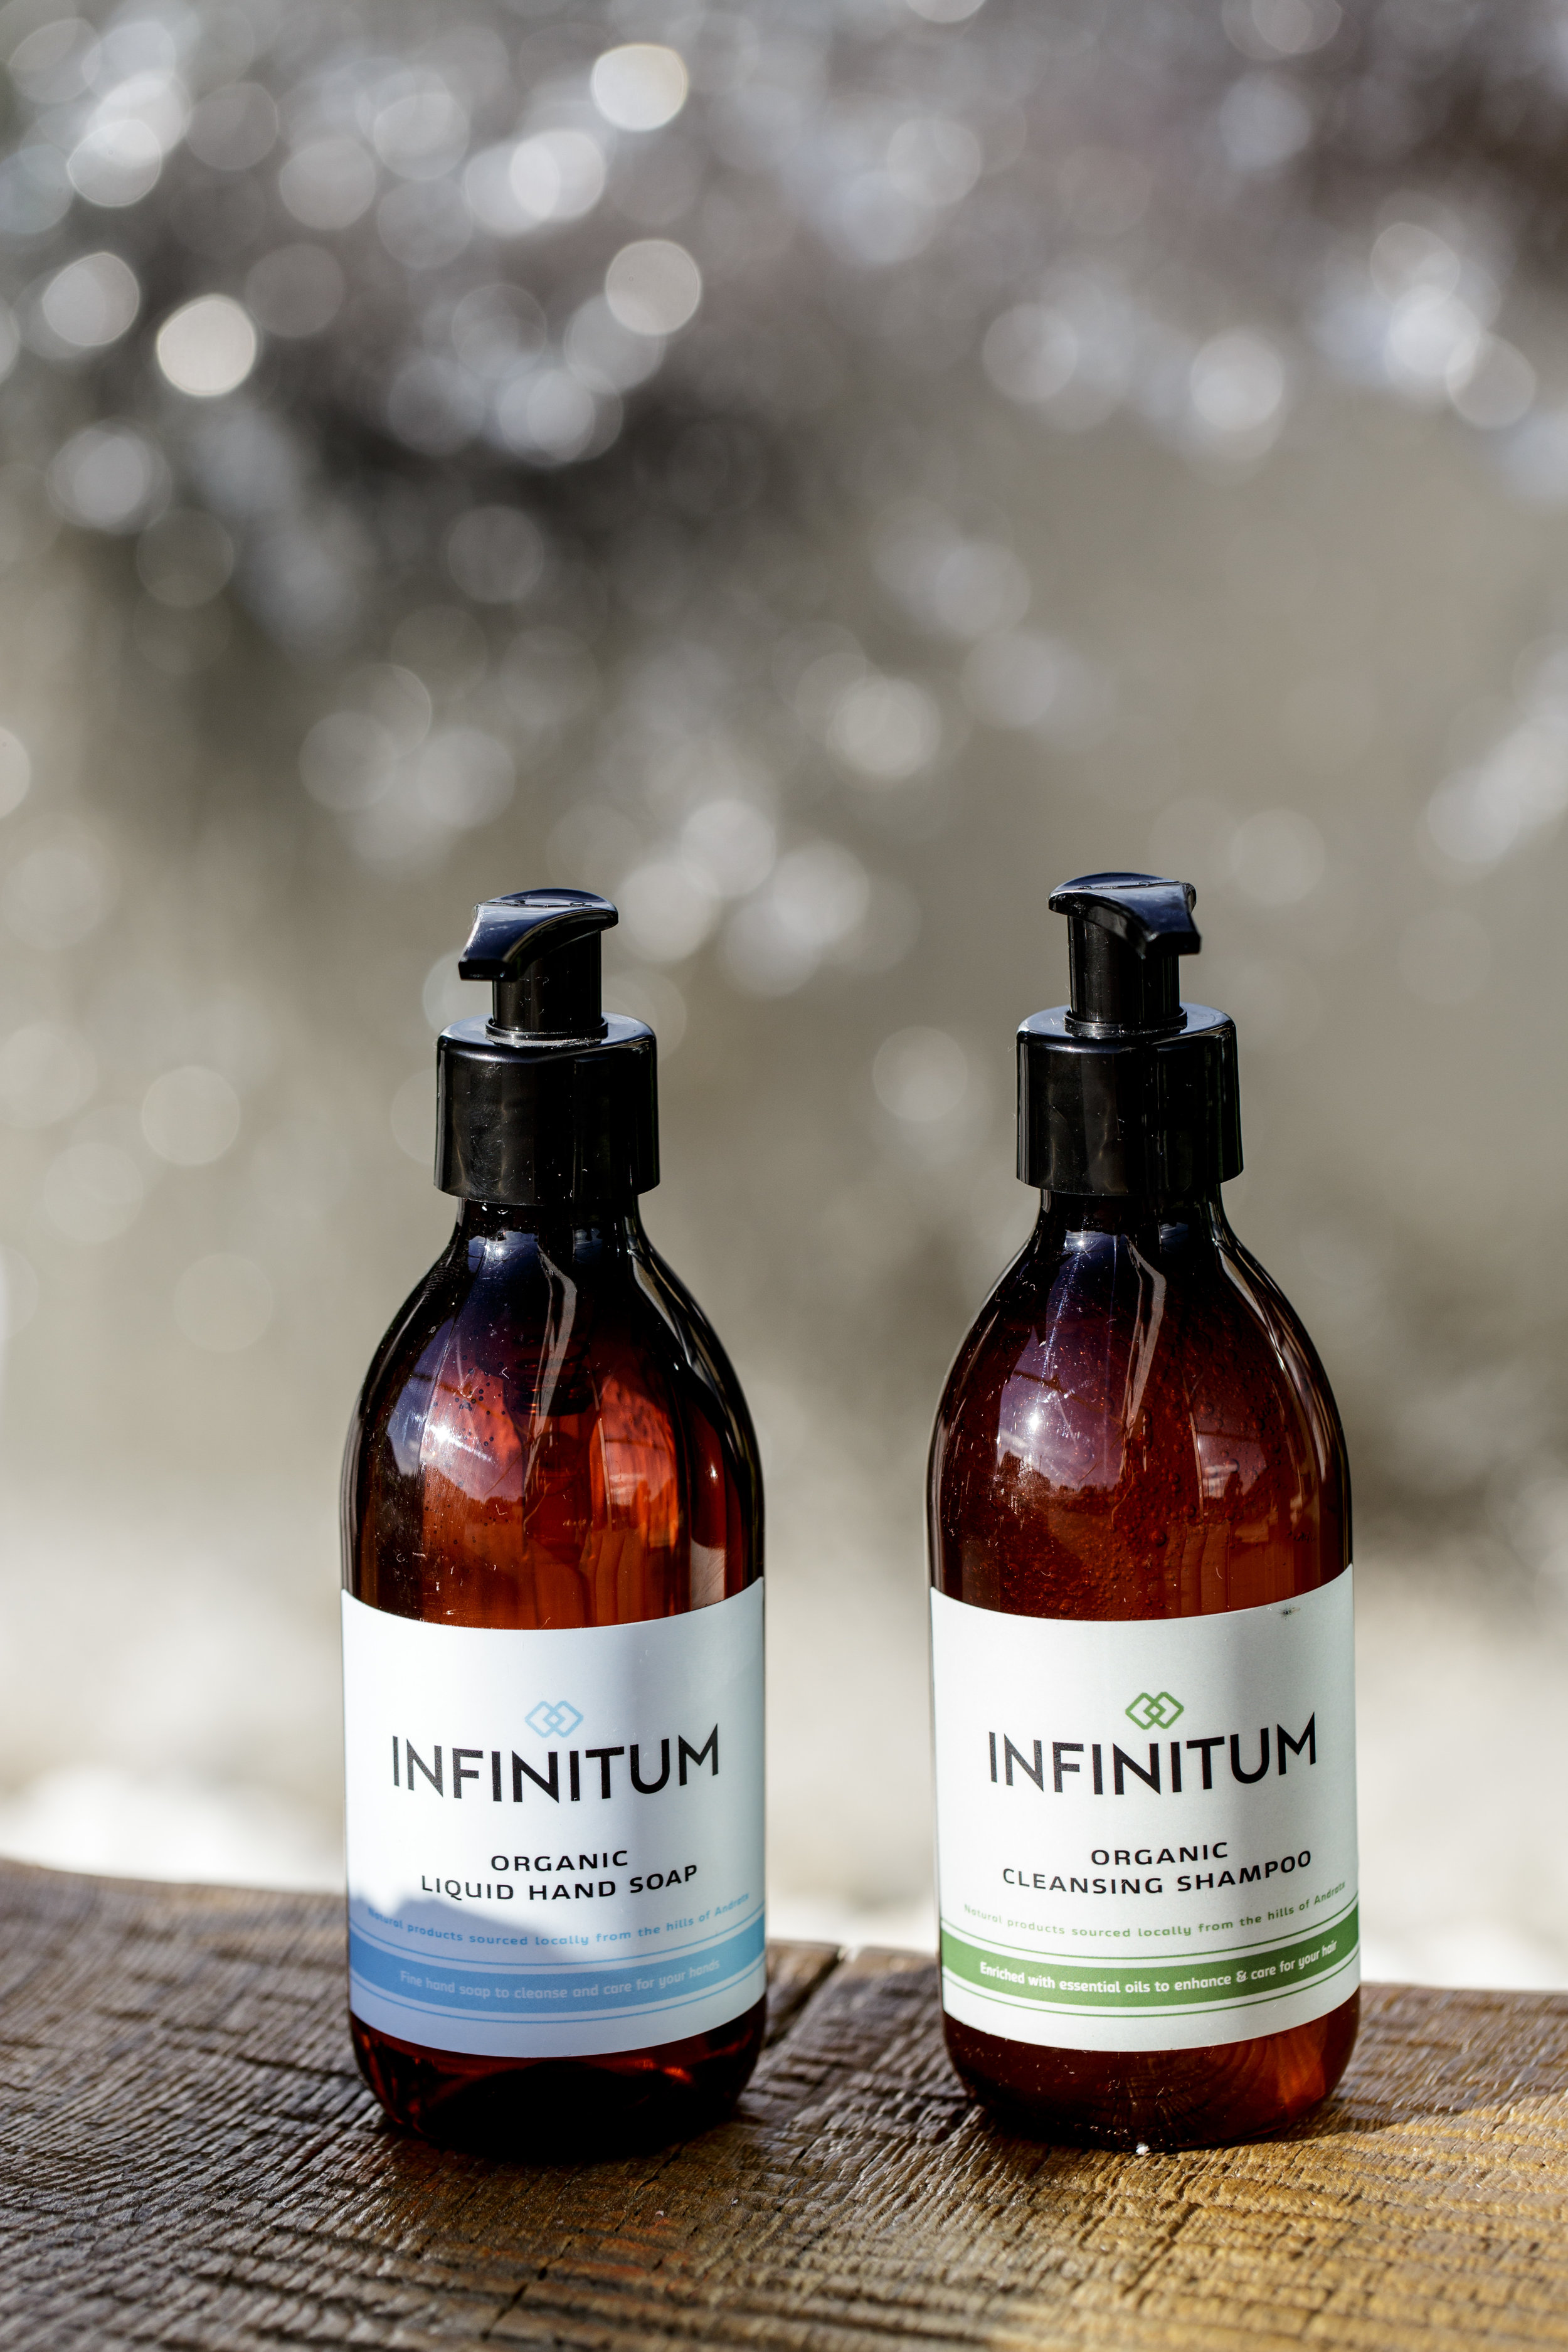 - Toiletries. We provide complimentary organic Infinitum Toiletries, locally sourced from the hills above Port D'Andratx.